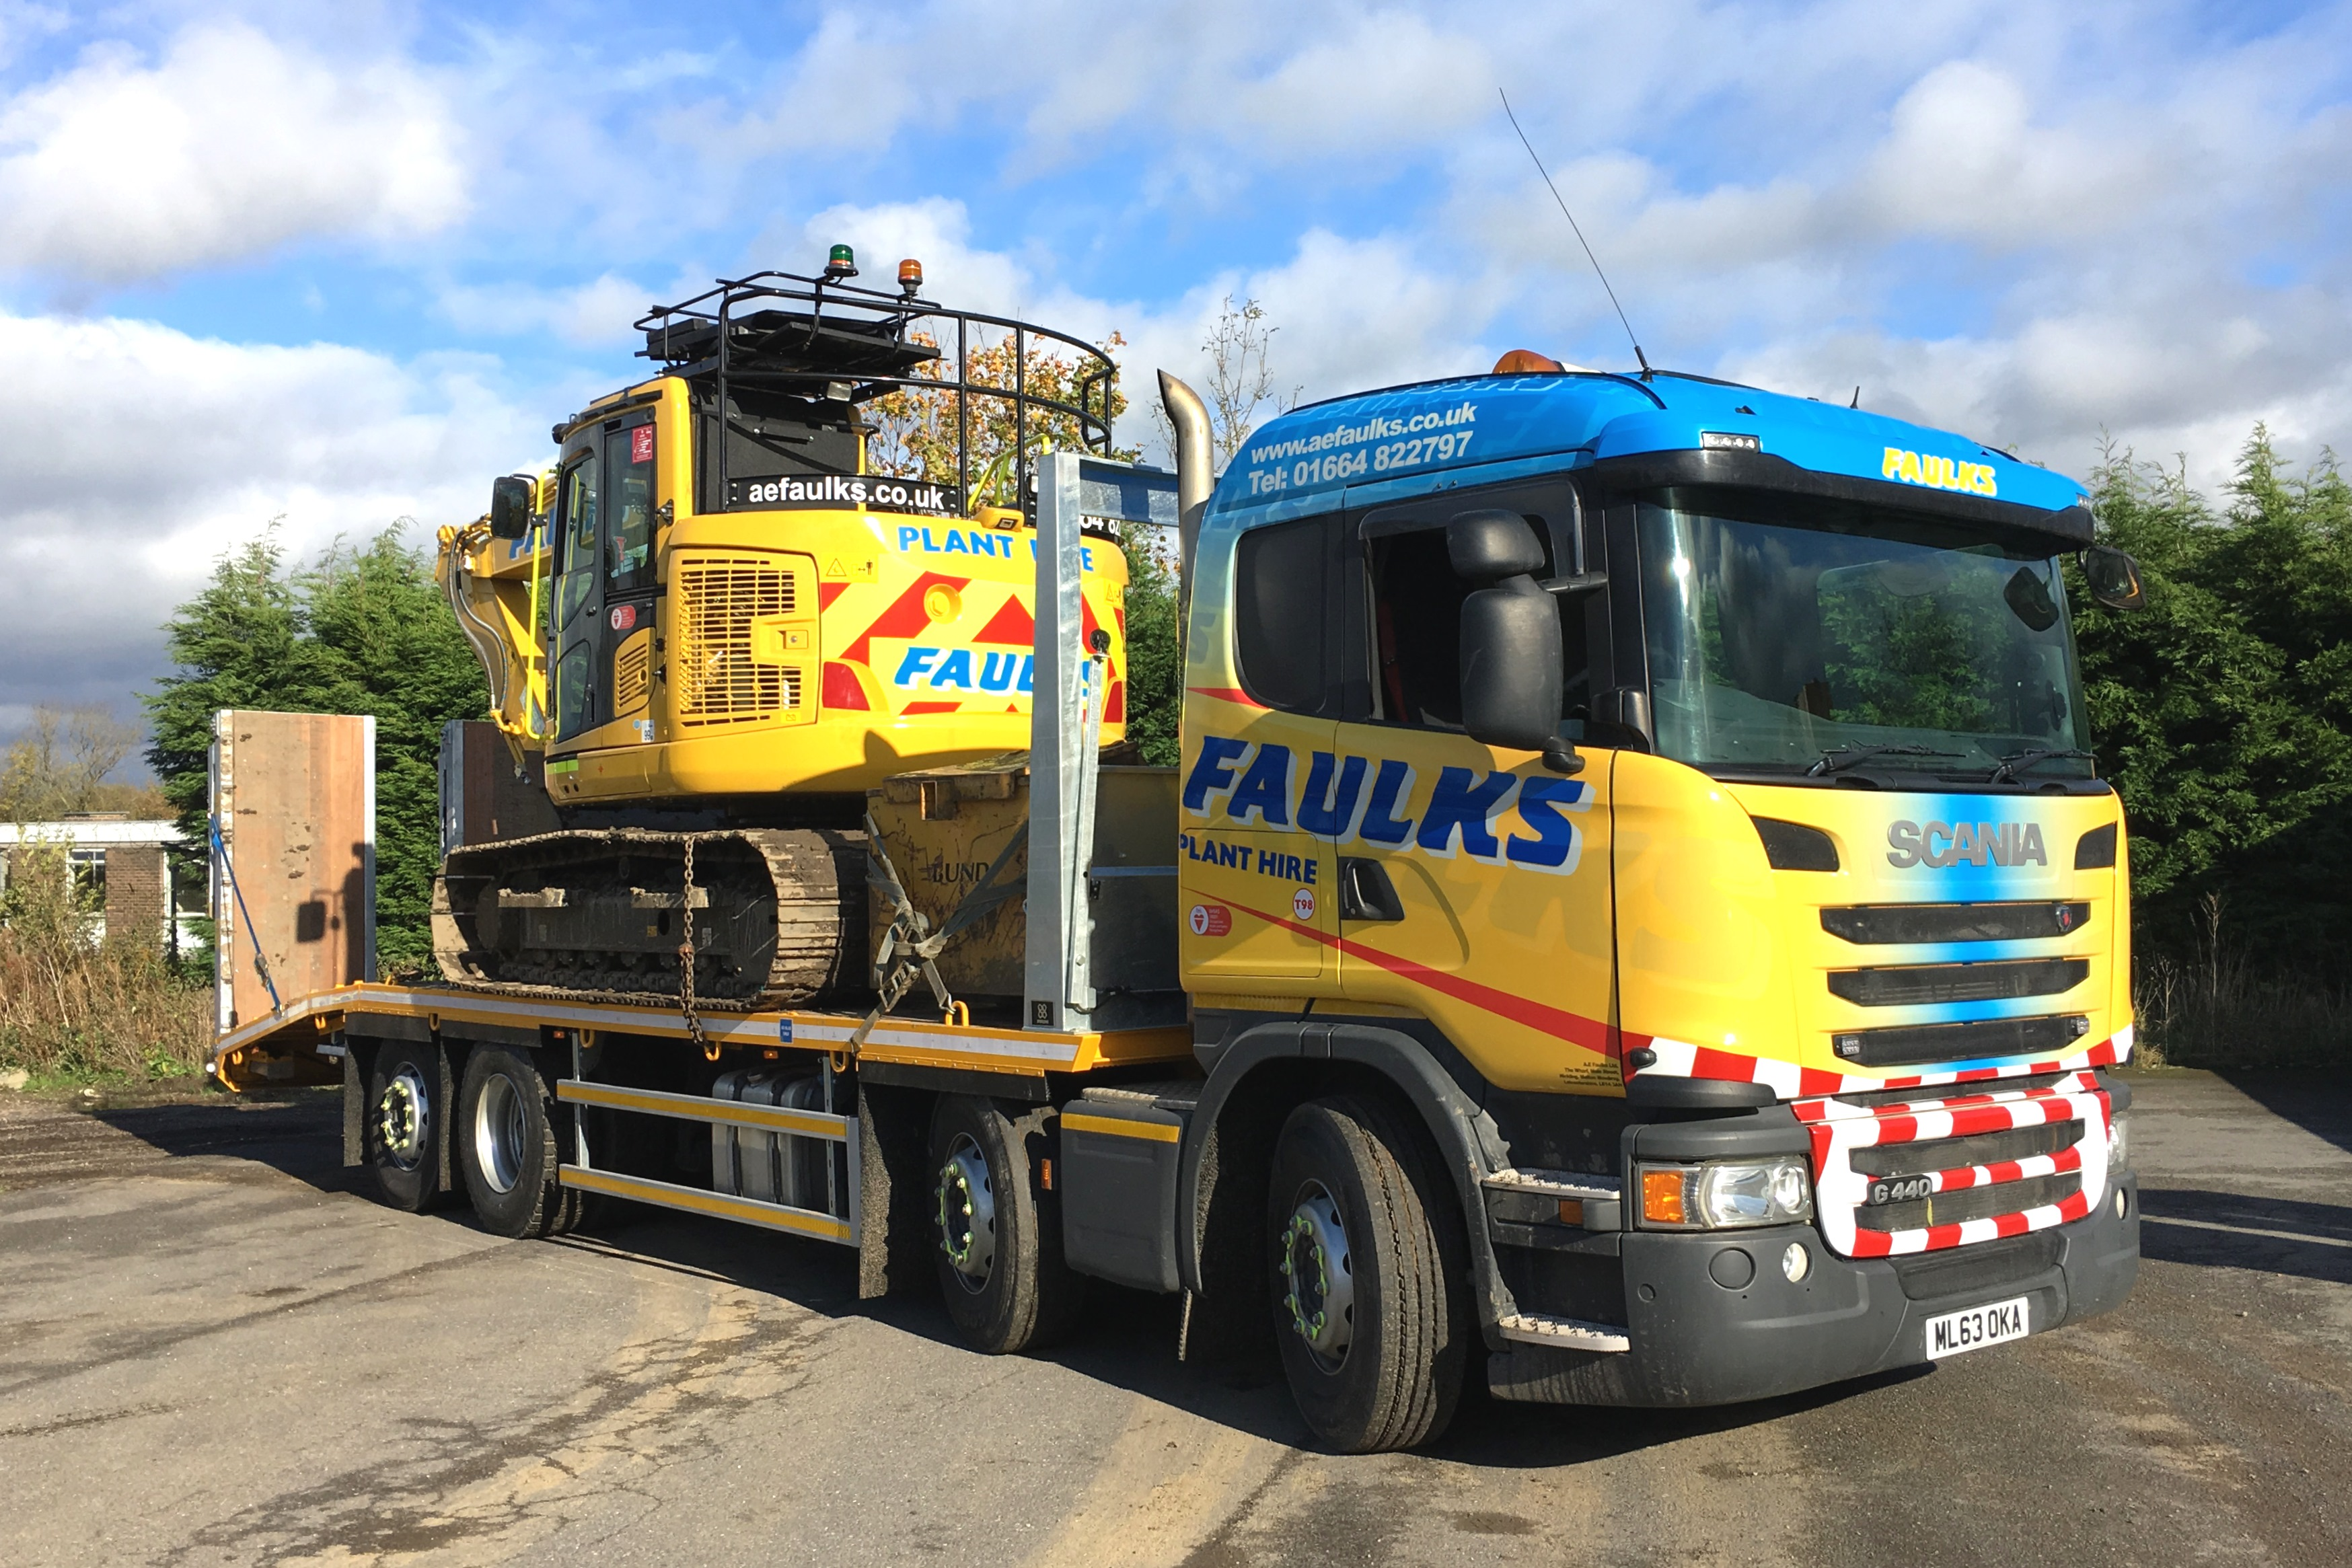 Scania Plant Lorry 1